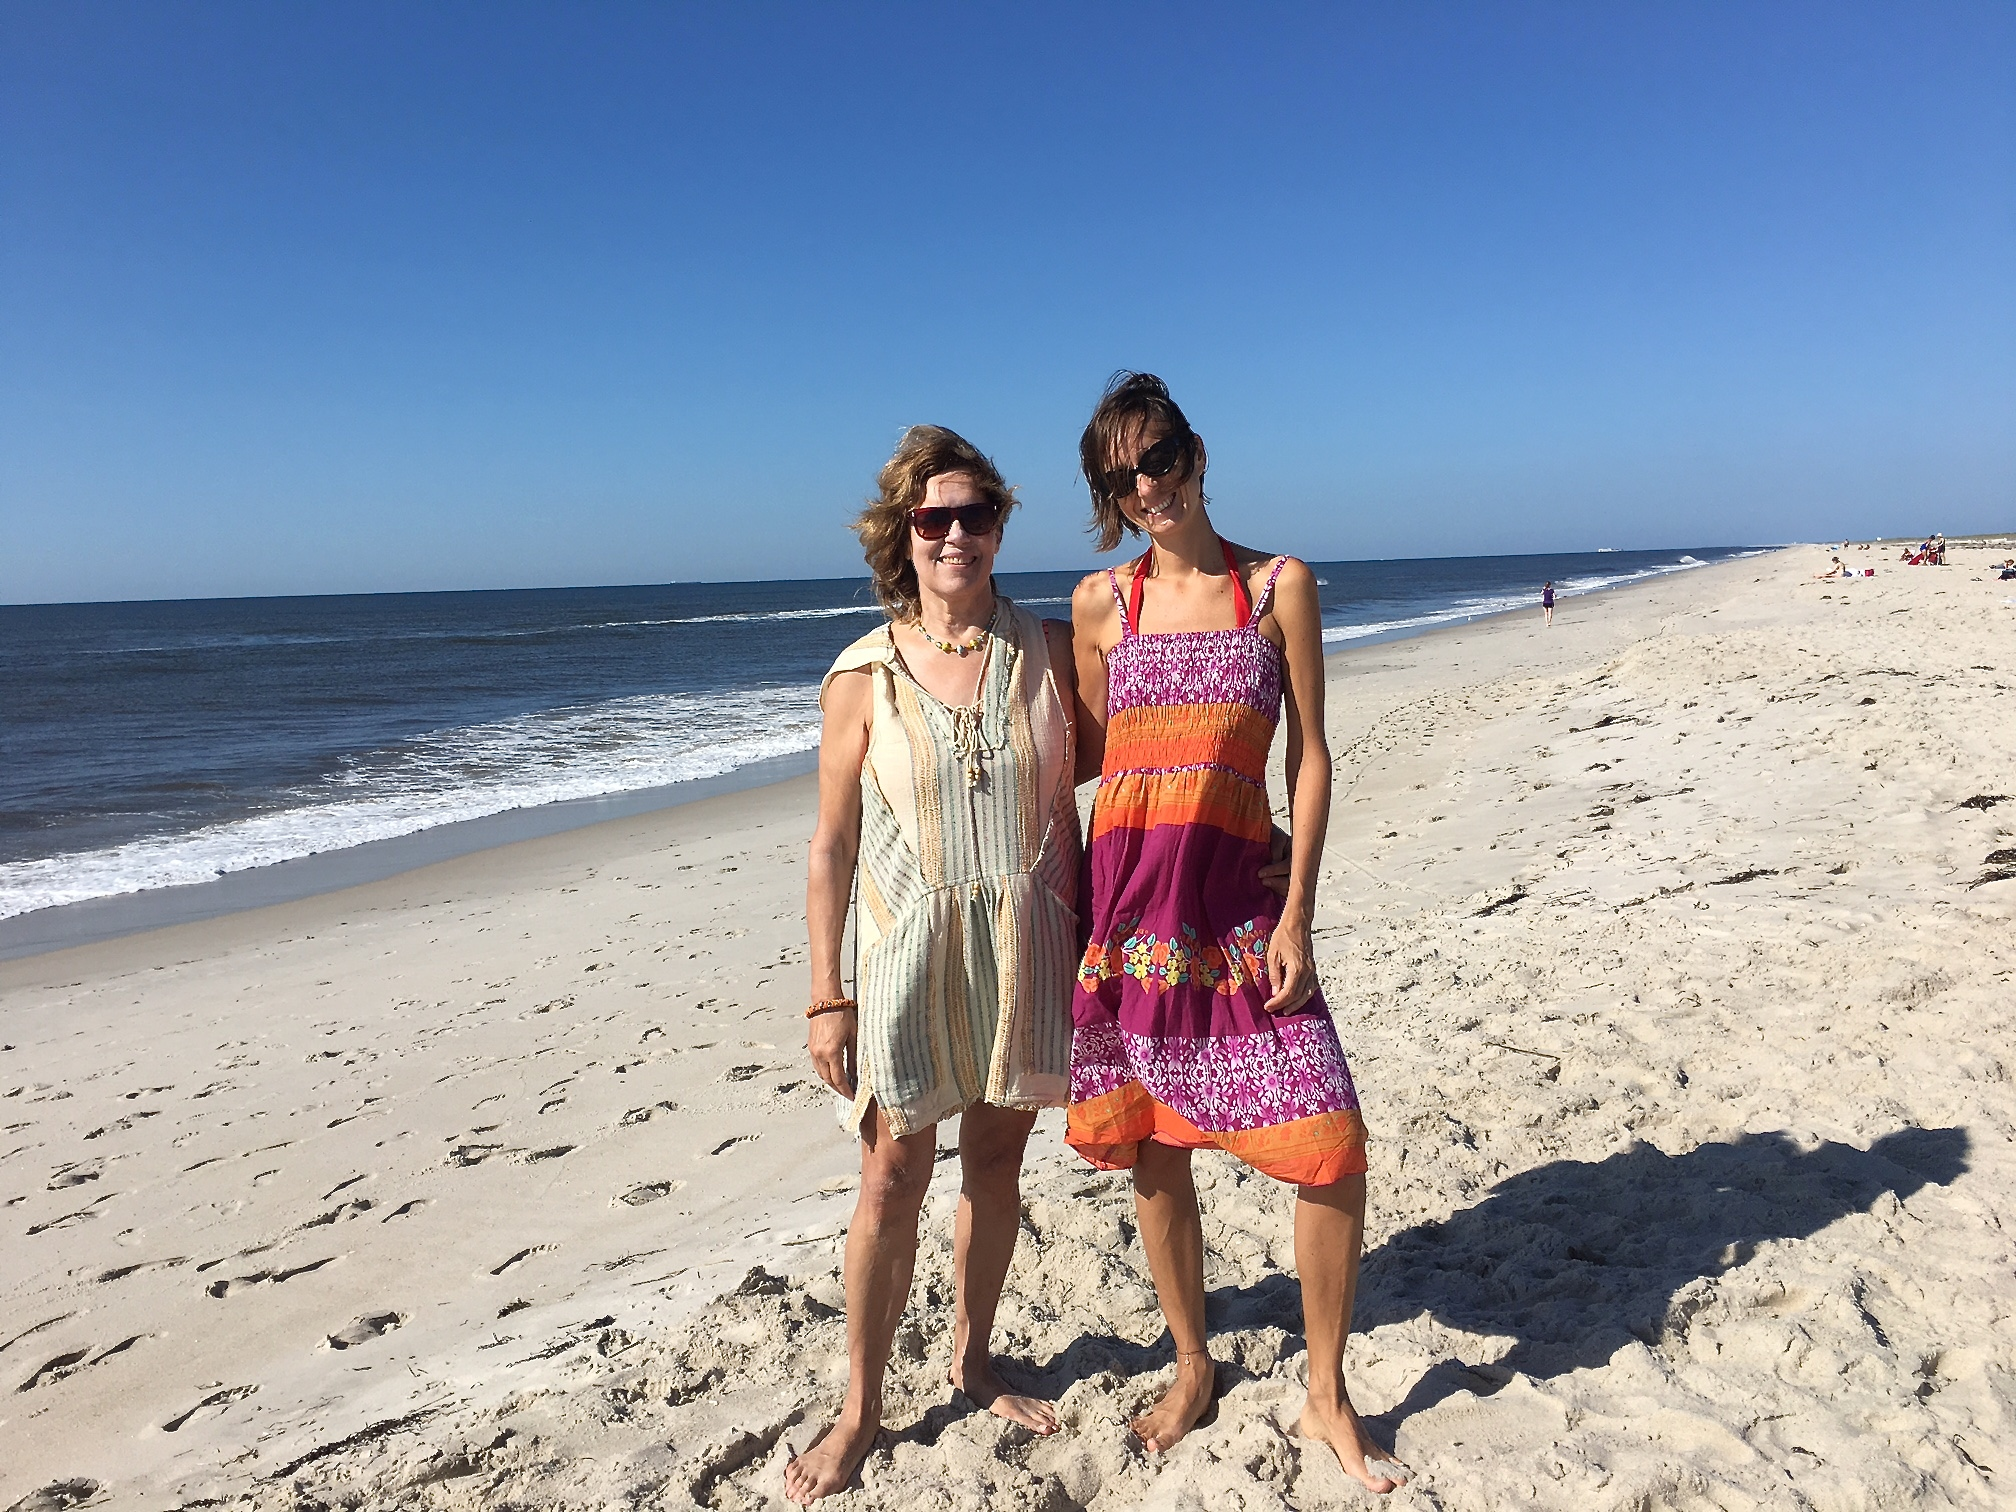 Lorraine Gudas & Jill's daughter Ana at Jones Beach  8-20-17